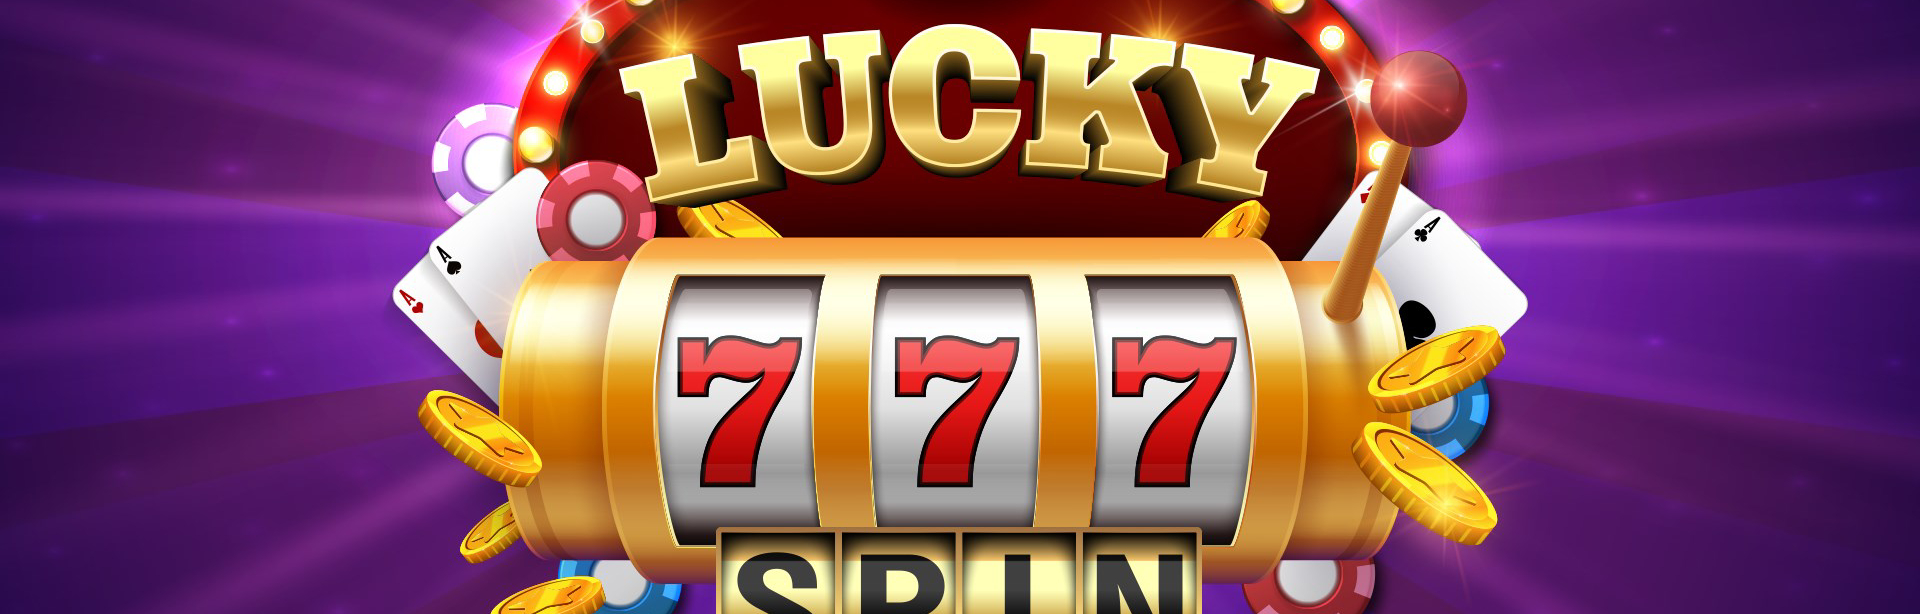 Play the Most Popular Themes in Slot Games Today!